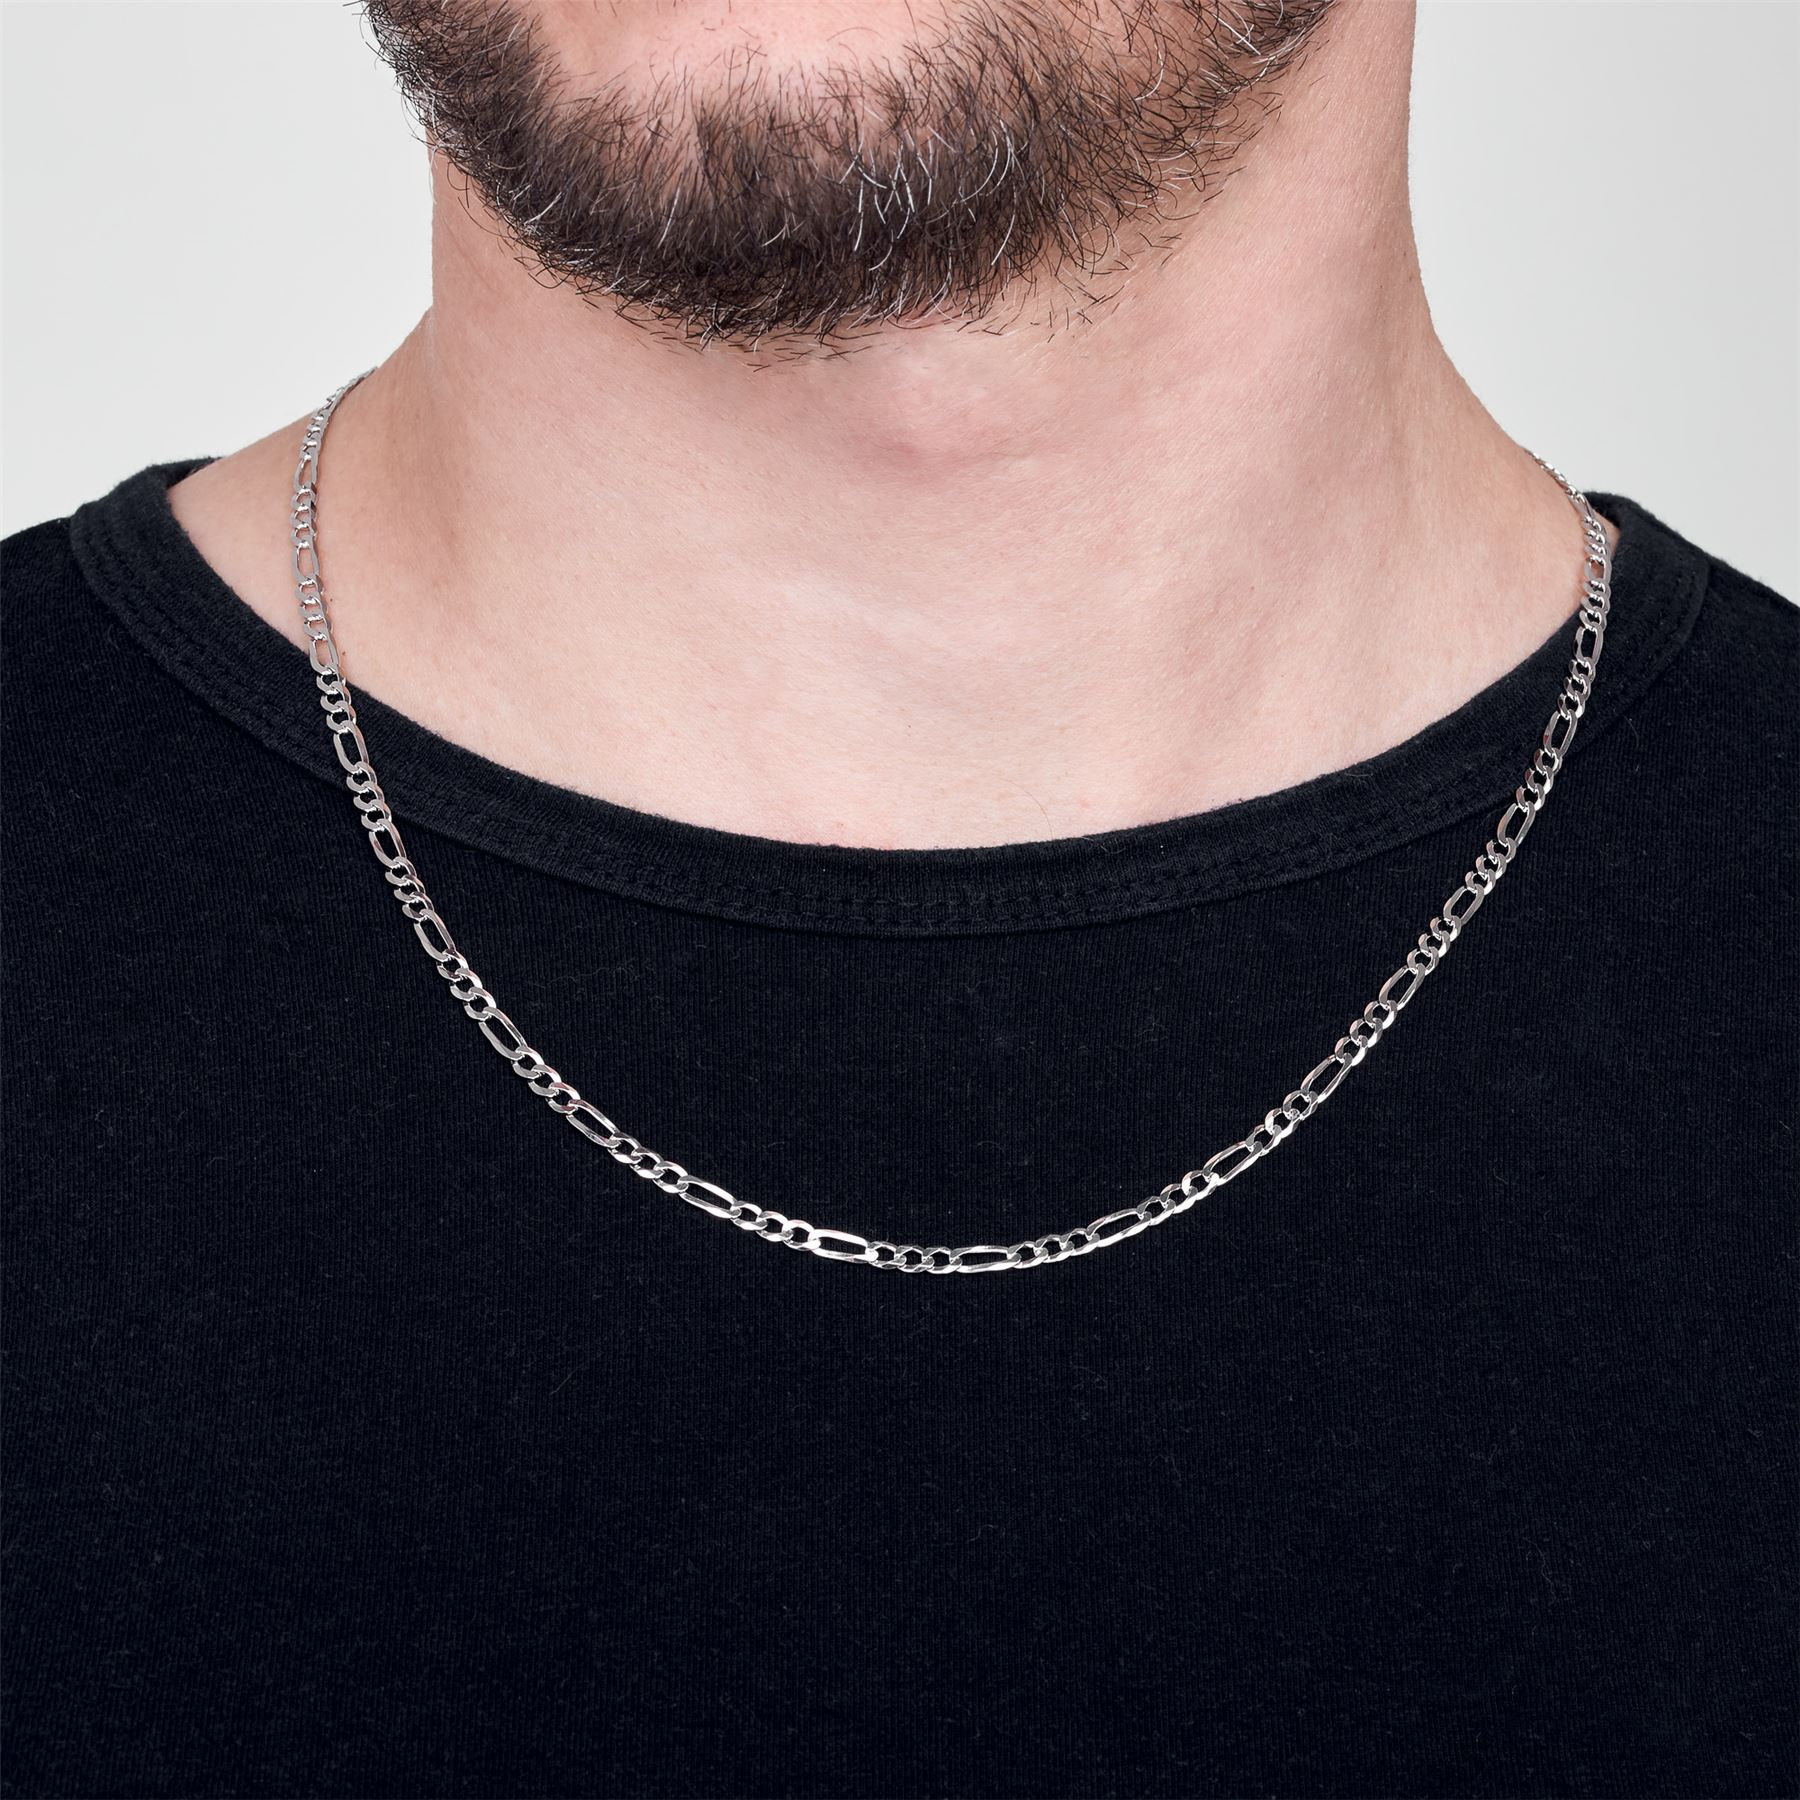 Amberta-925-Sterling-Silver-Link-Chain-Mens-Curb-Cuban-Necklace-ALL-SIZES-Italy thumbnail 32